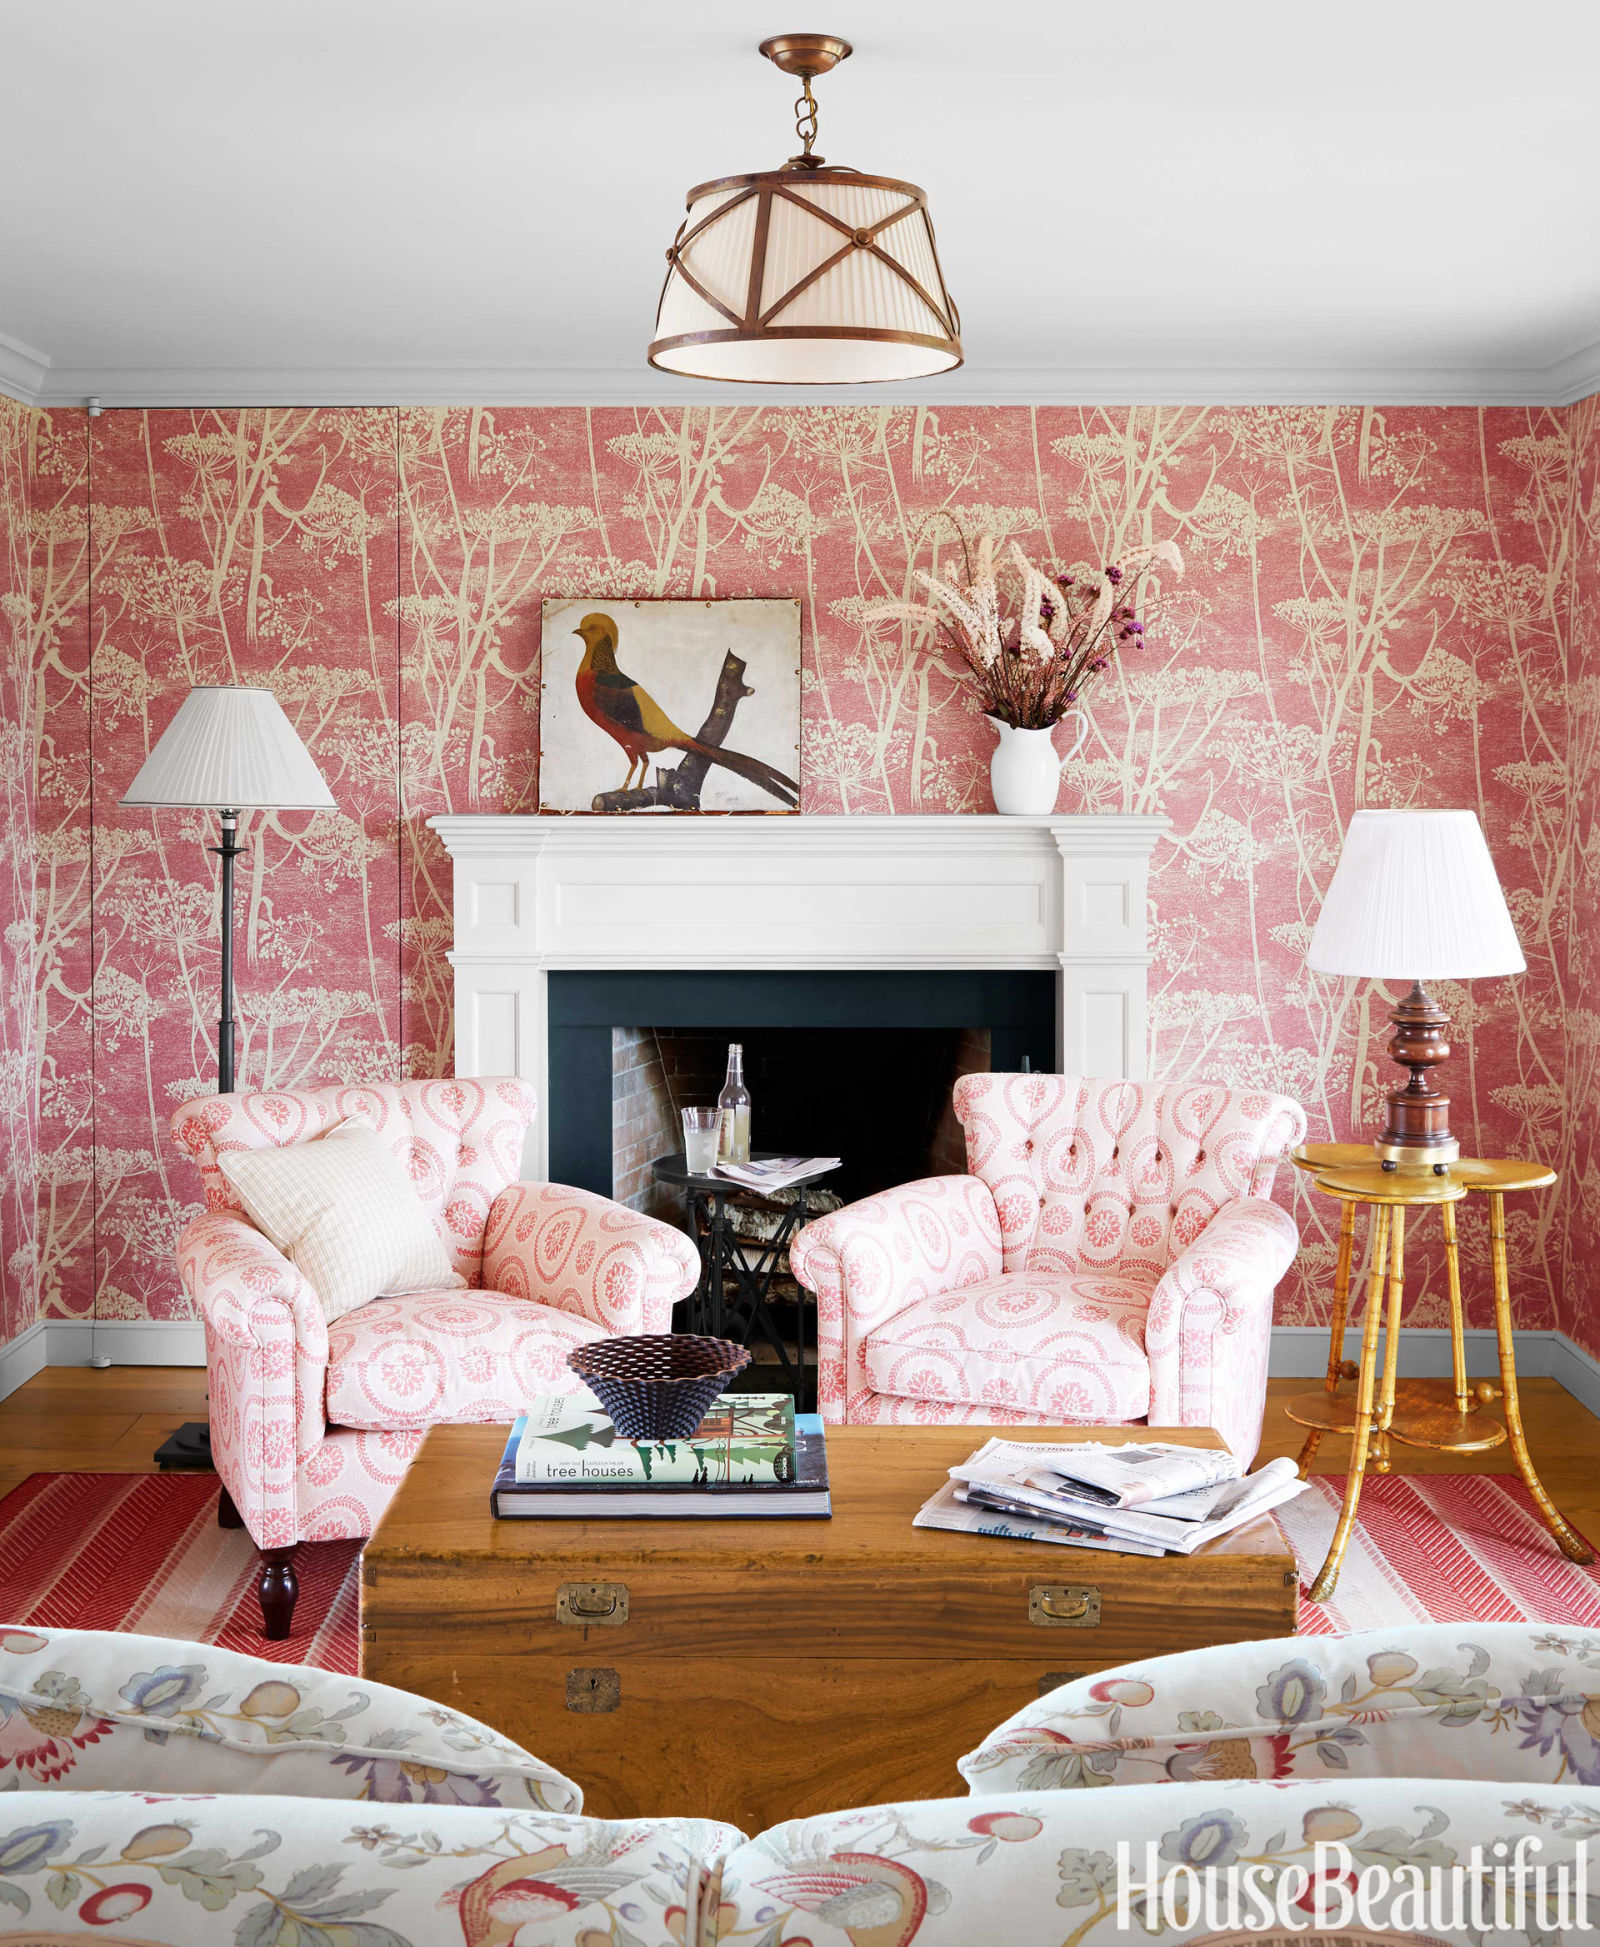 30 Stunning Ways To Decorate Your Living Room For: 6 Quick Ways To Organize Your Living Room This Spring